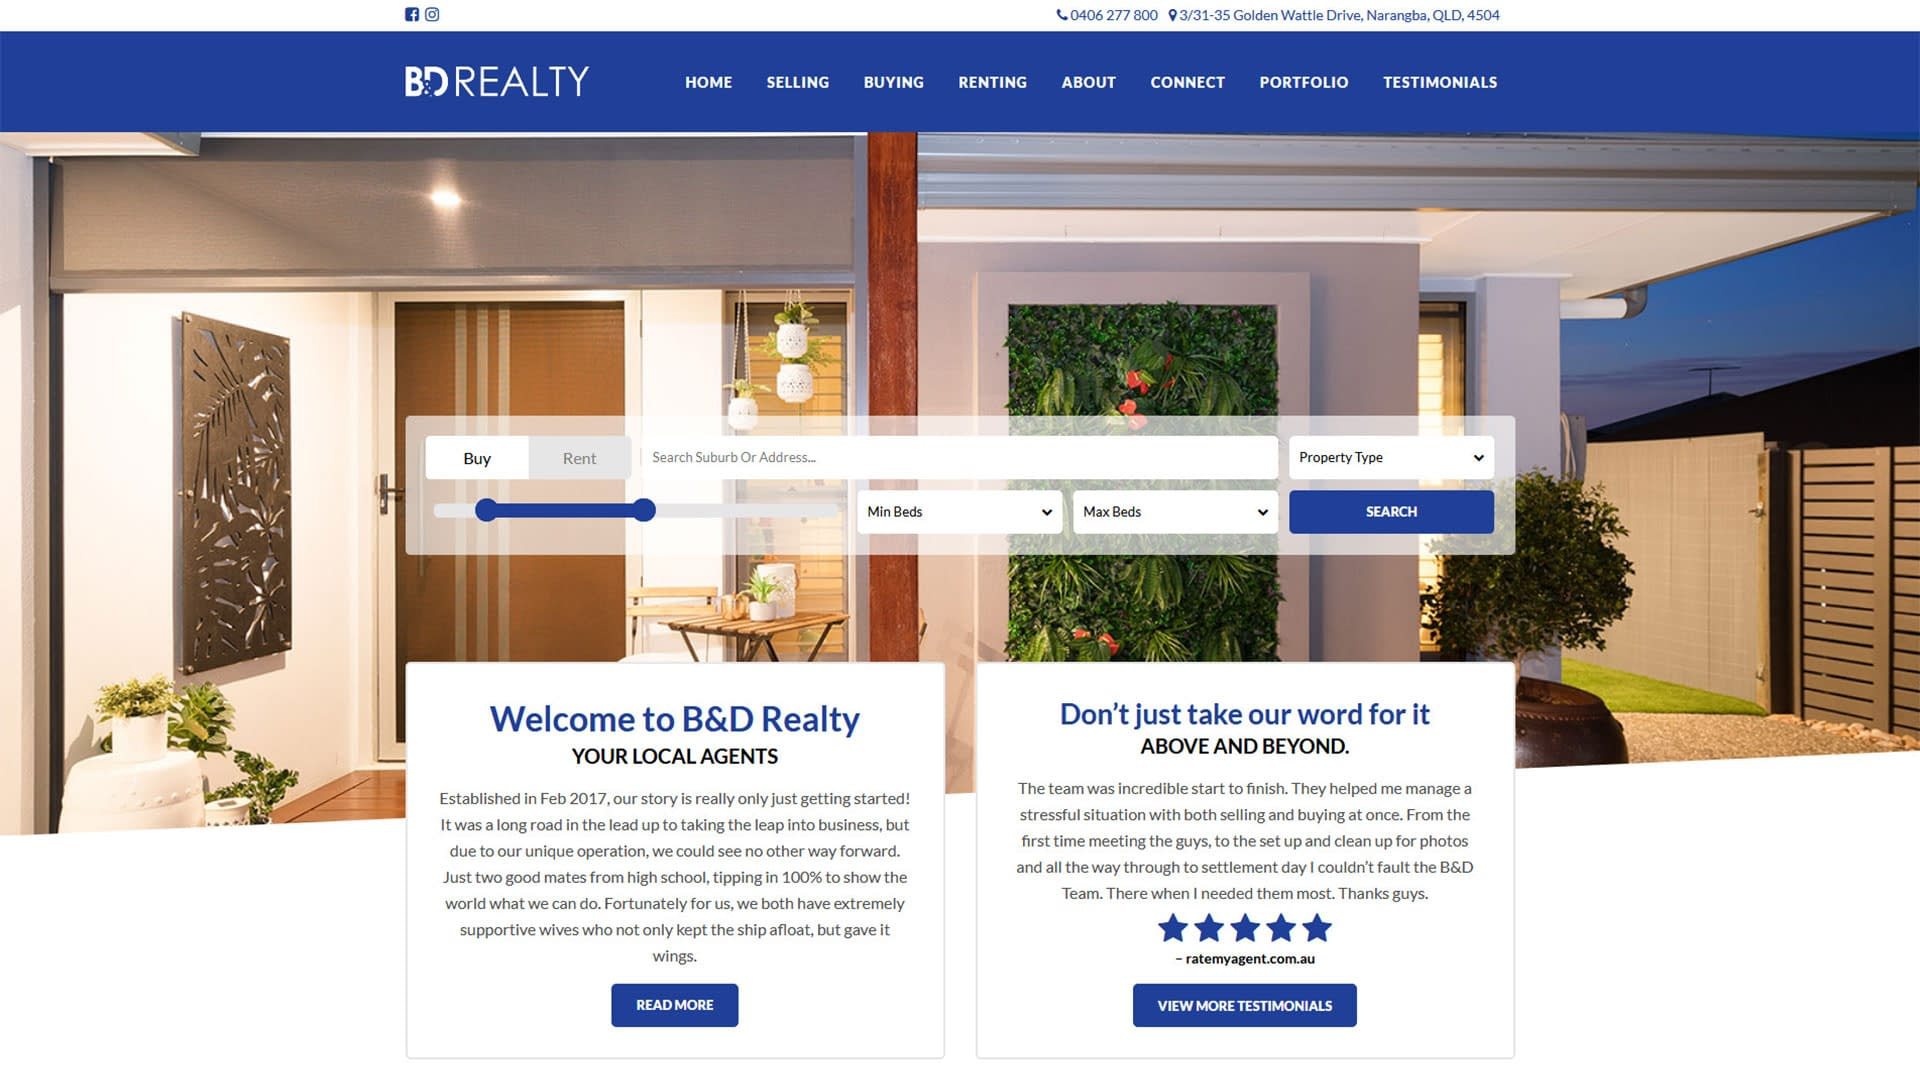 B&D Realty custom real estate website